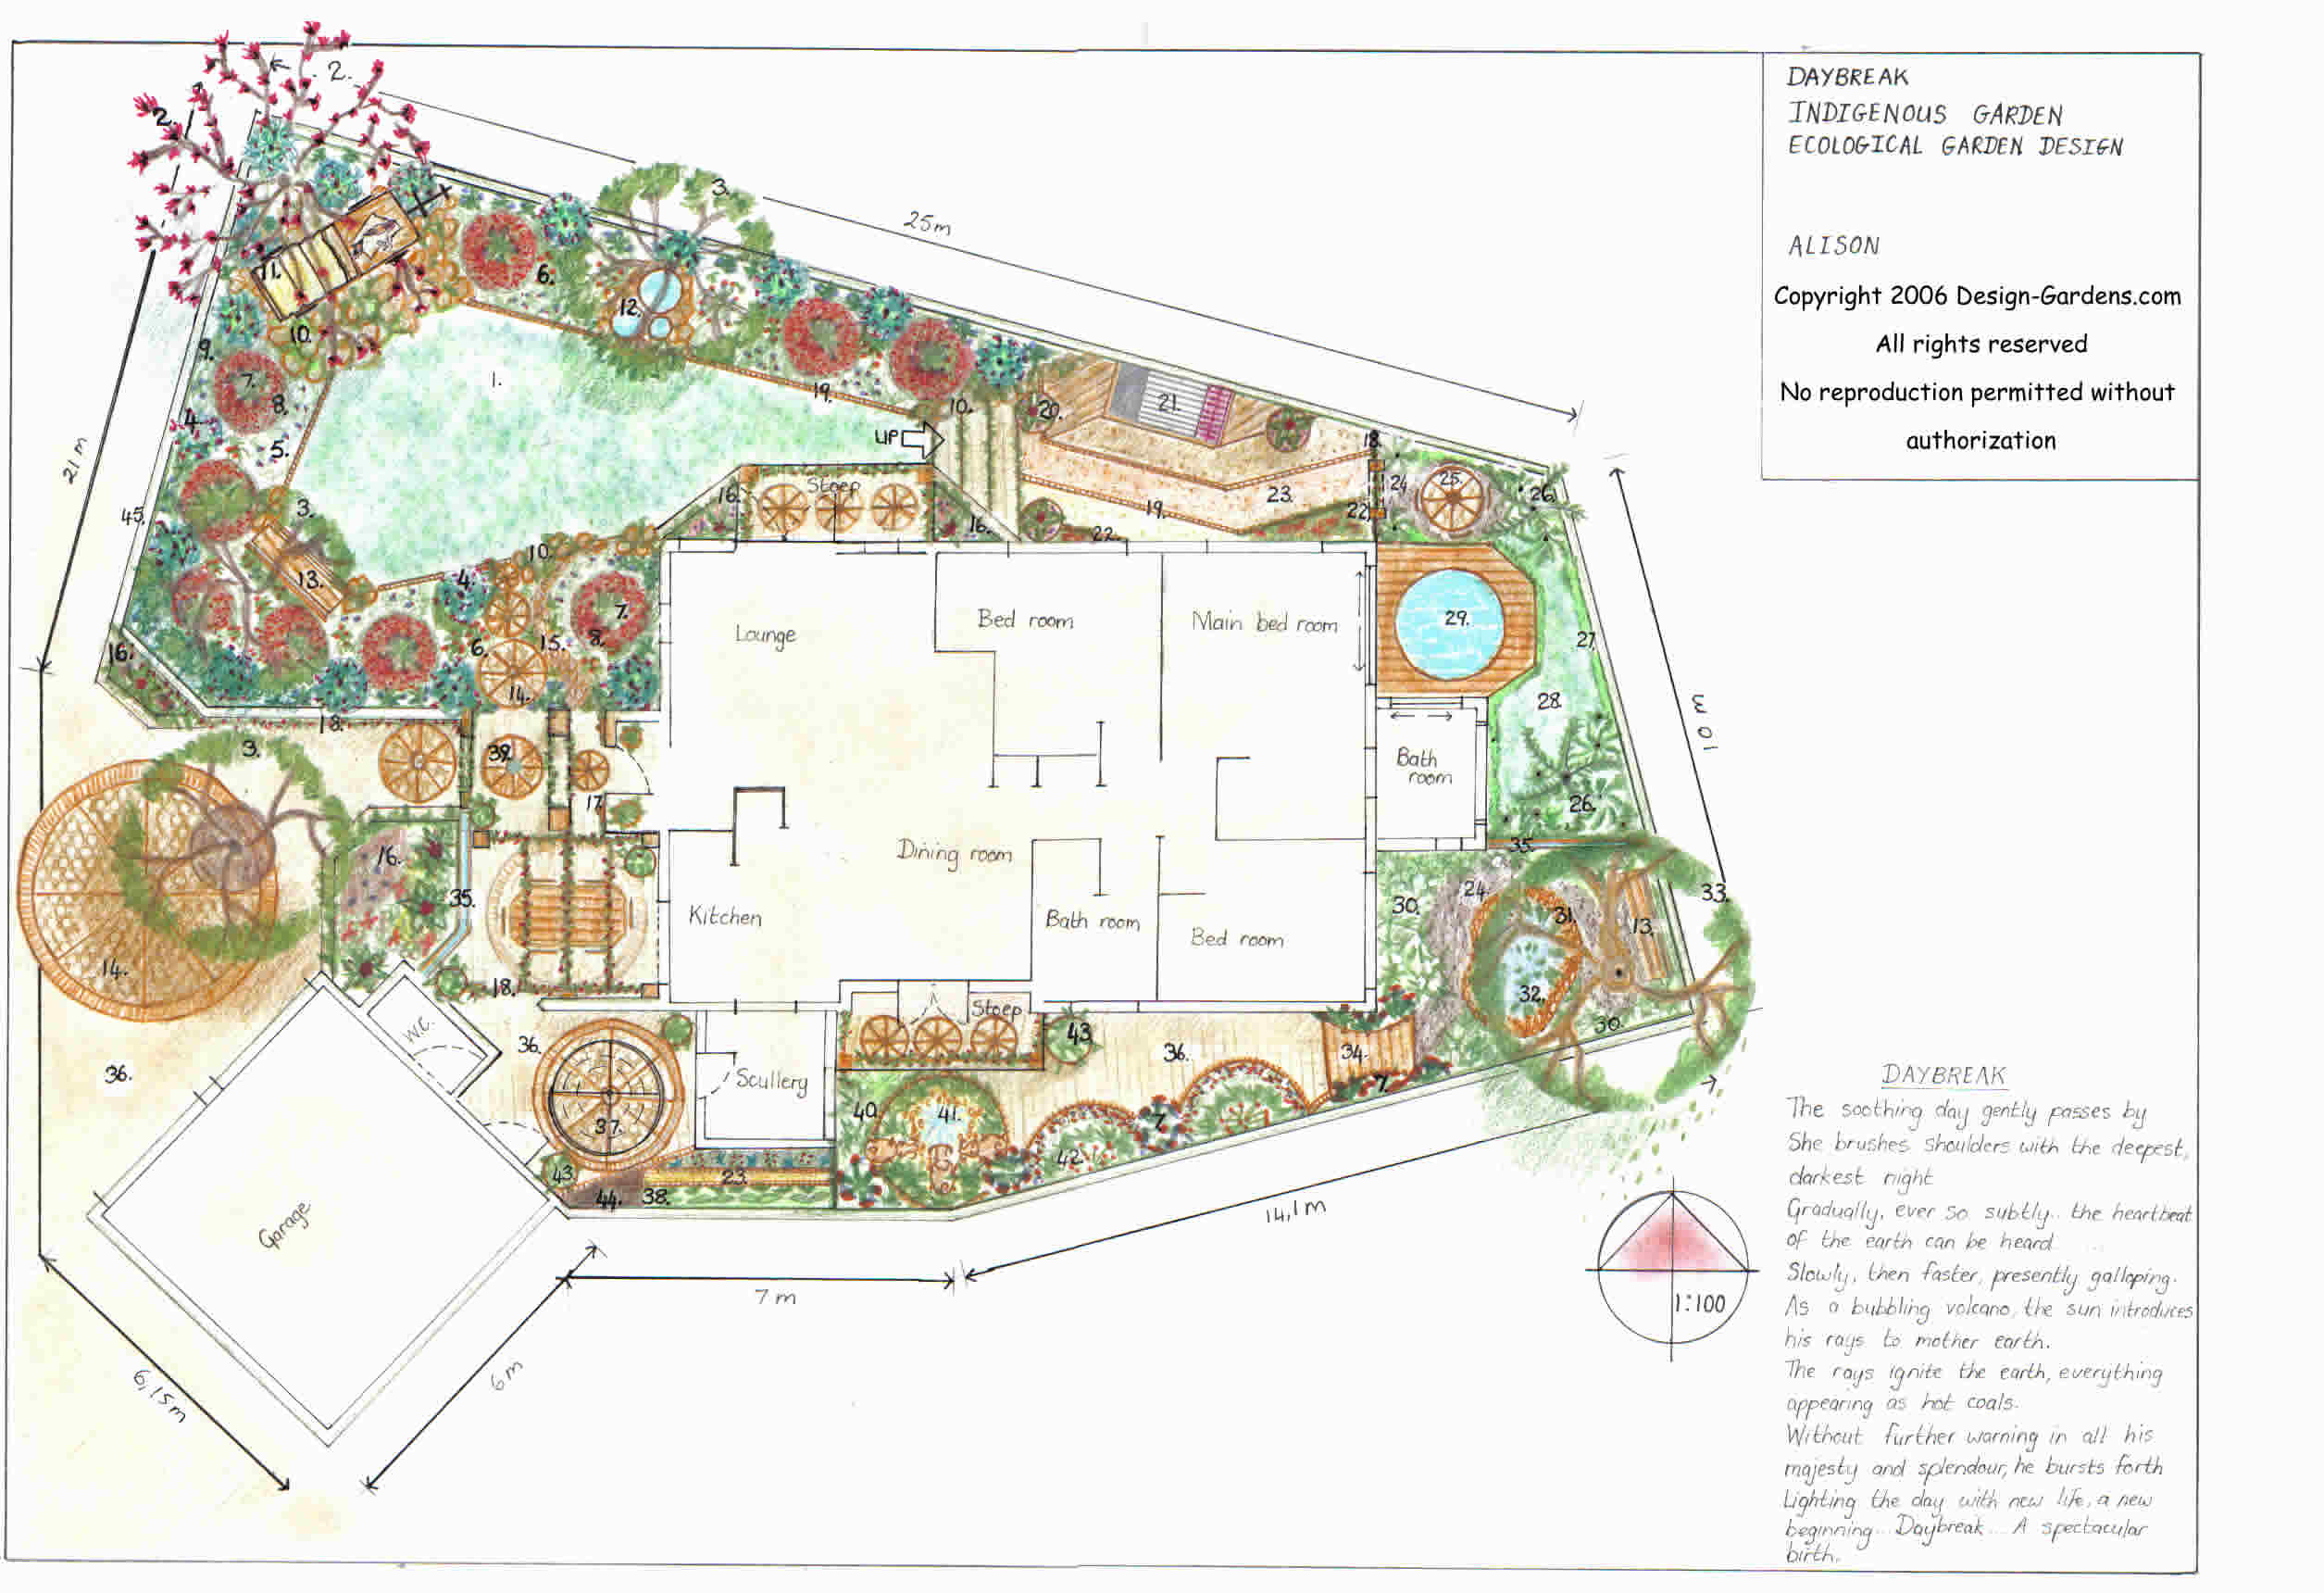 Gallery of garden design by groby landscapes in leicester for Japanese garden plans and plants